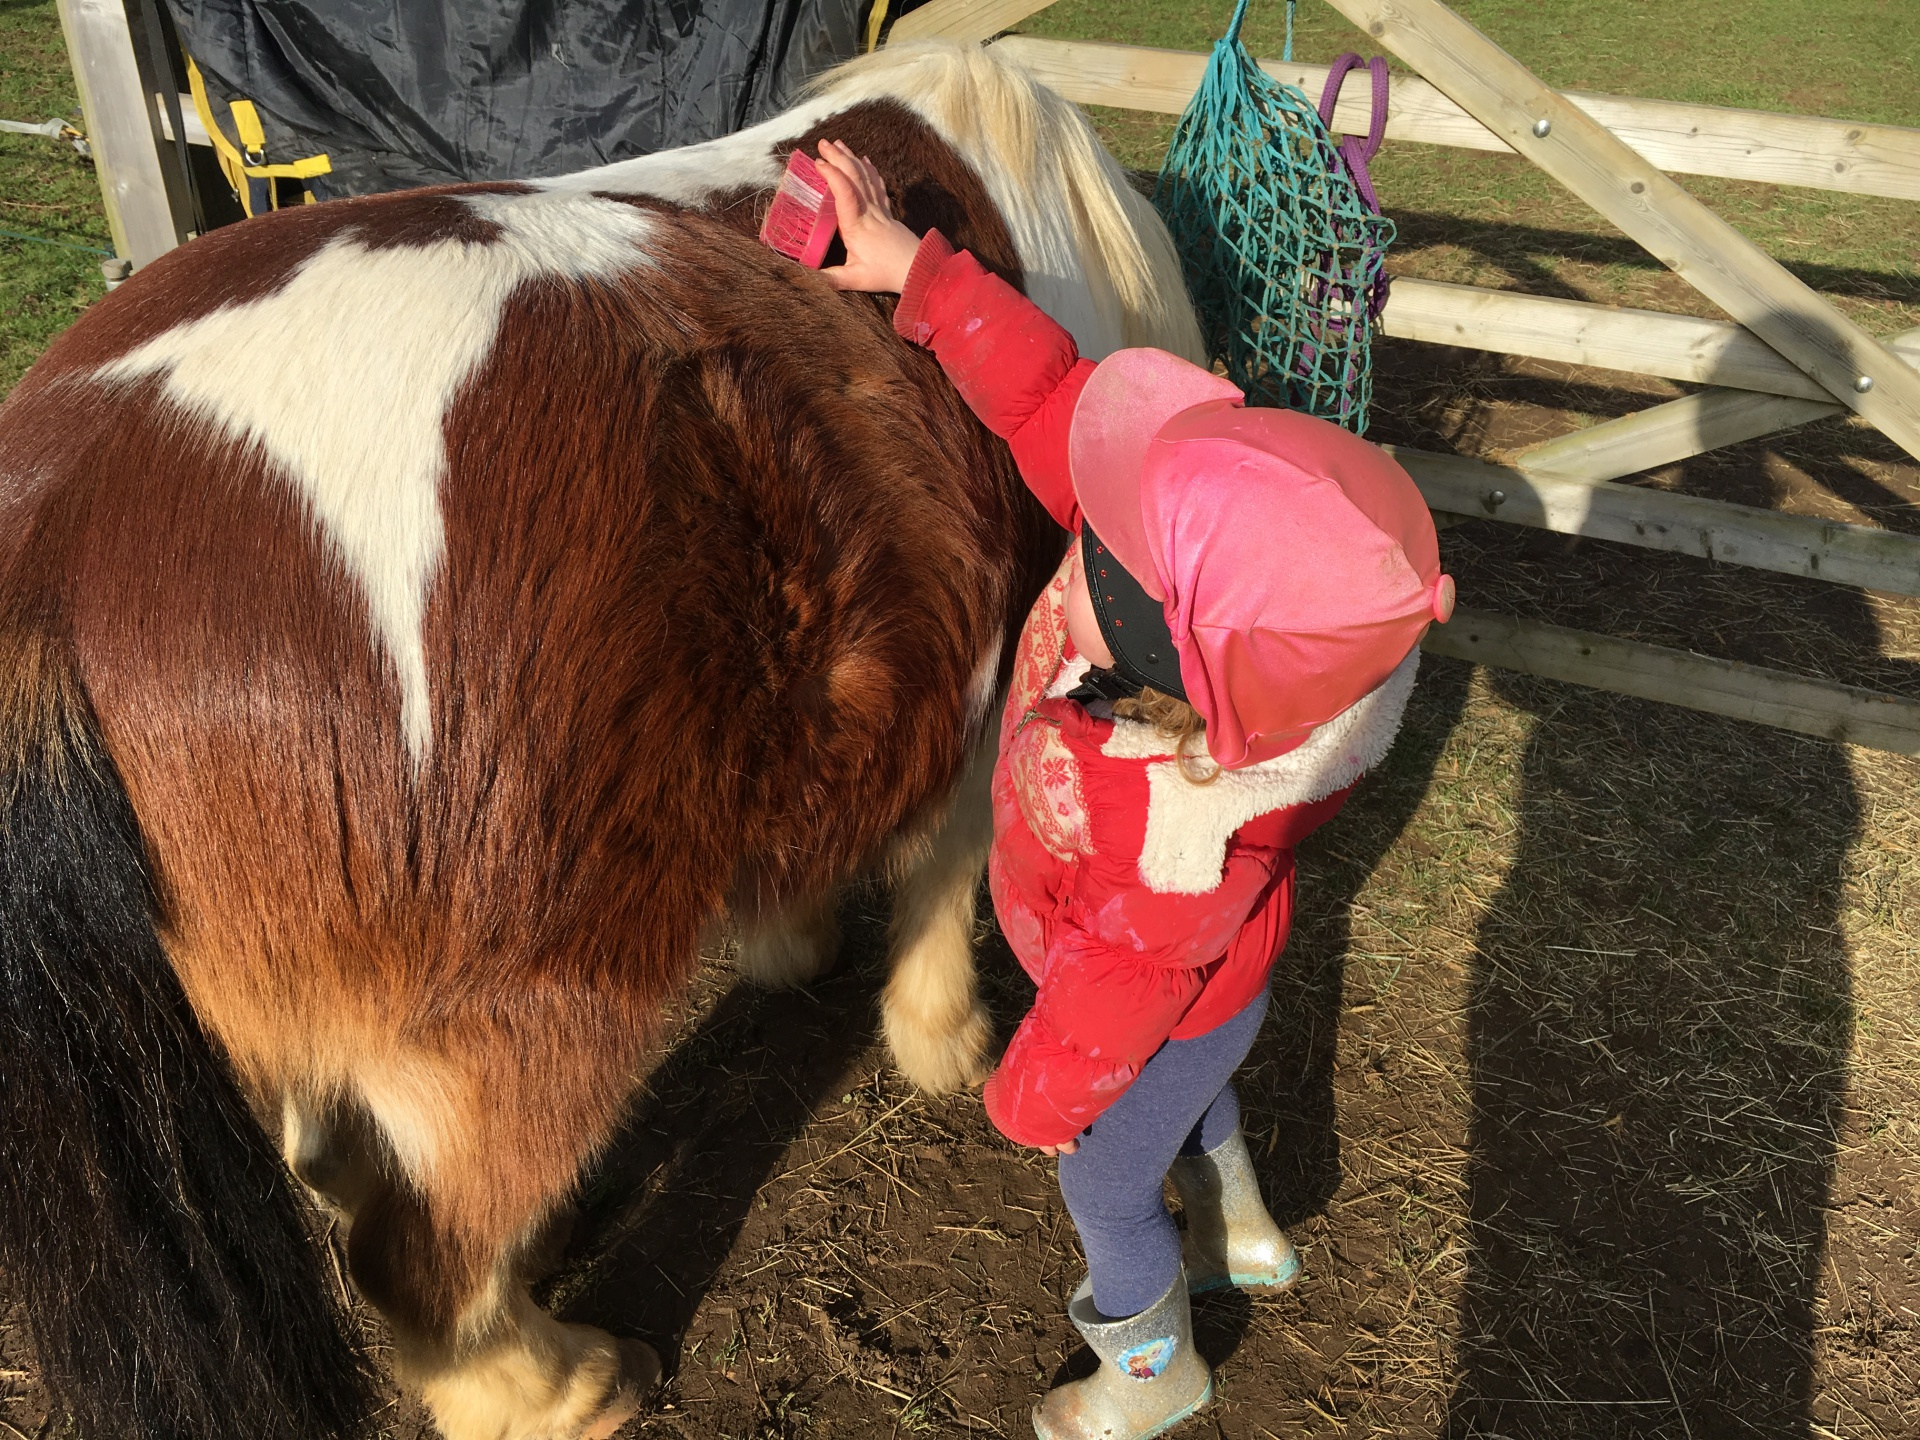 Child & Pony bonding time, Finding the love before communication